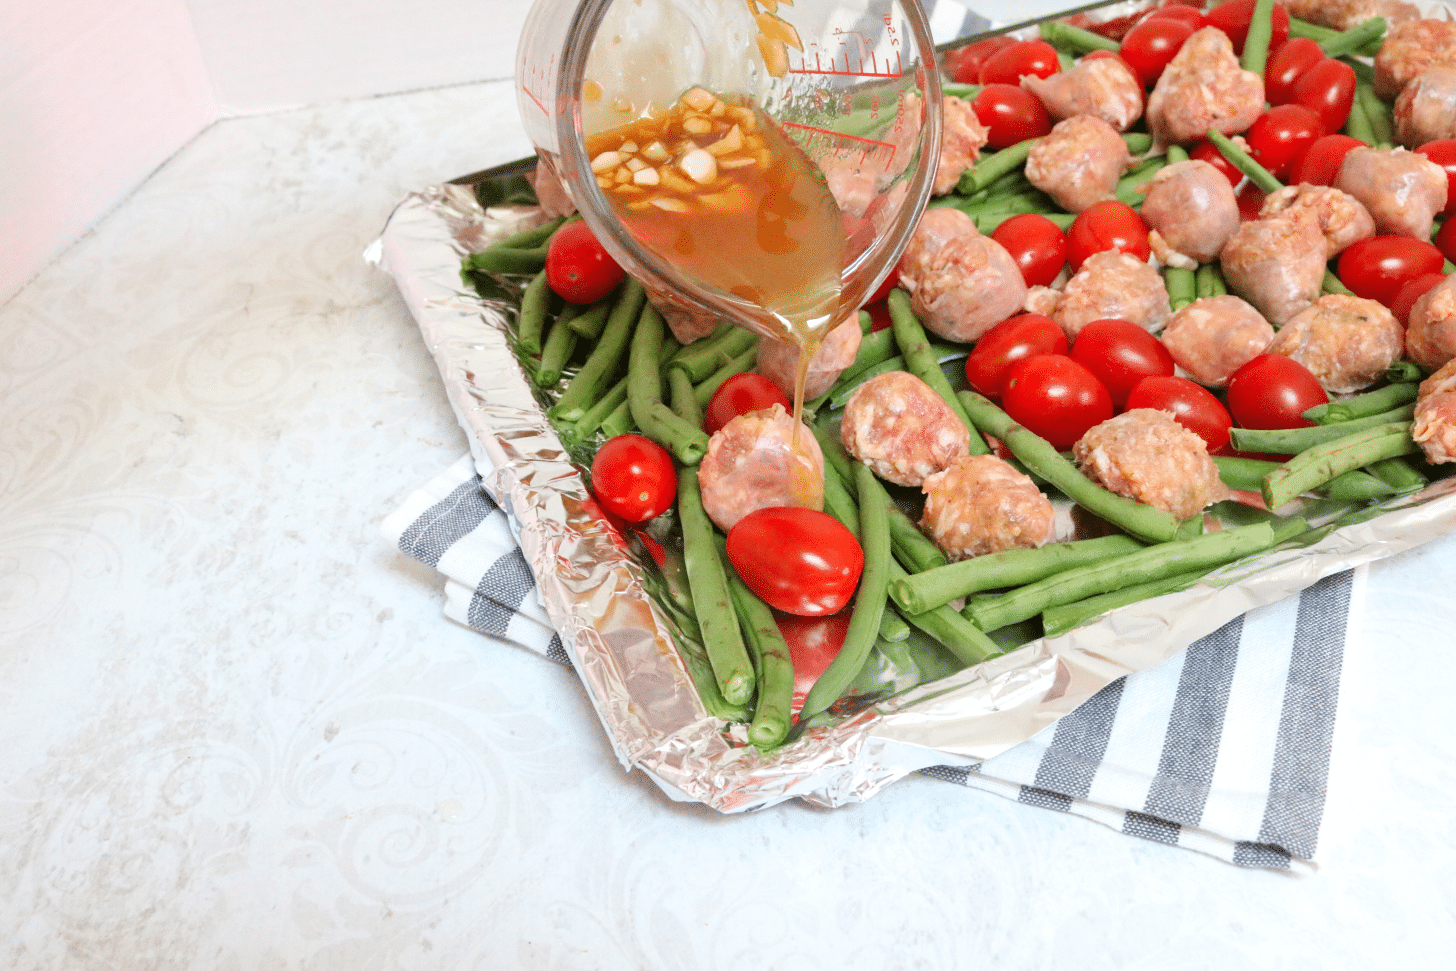 Glass measuring cup with honey garlic sauce being poured on a tinfoil lined pan with sausages, tomatoes and green beans